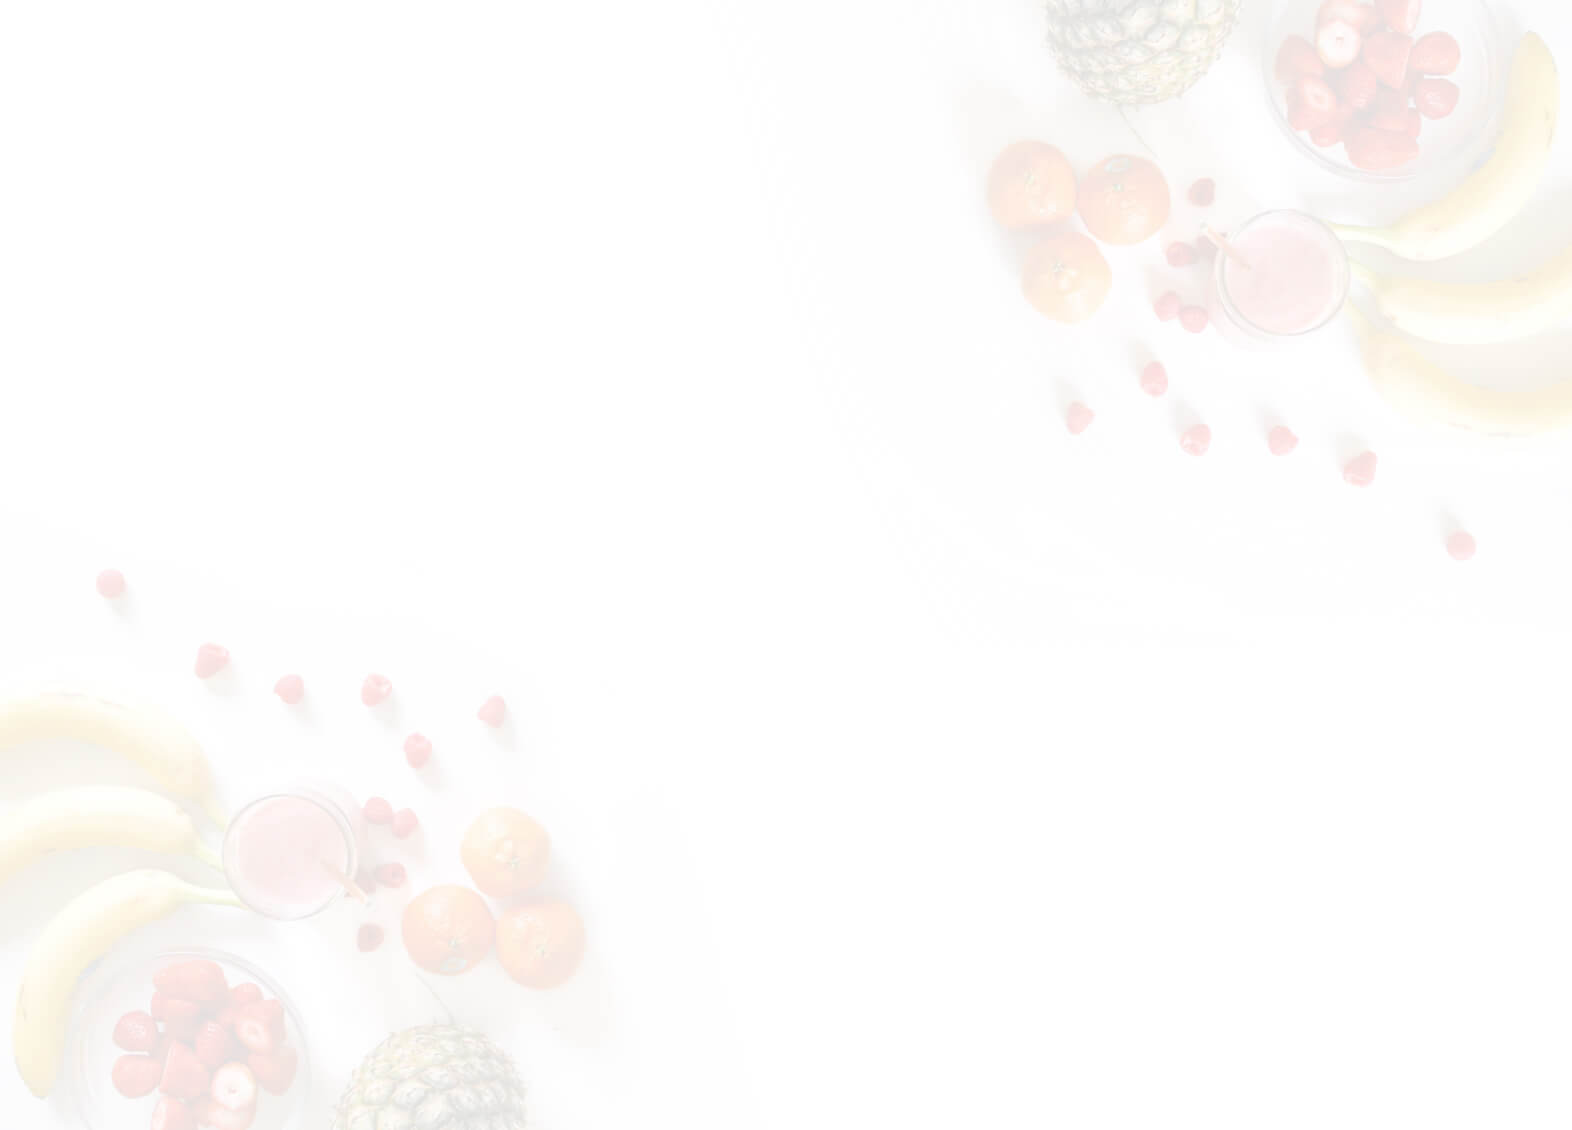 Recipes - Events background